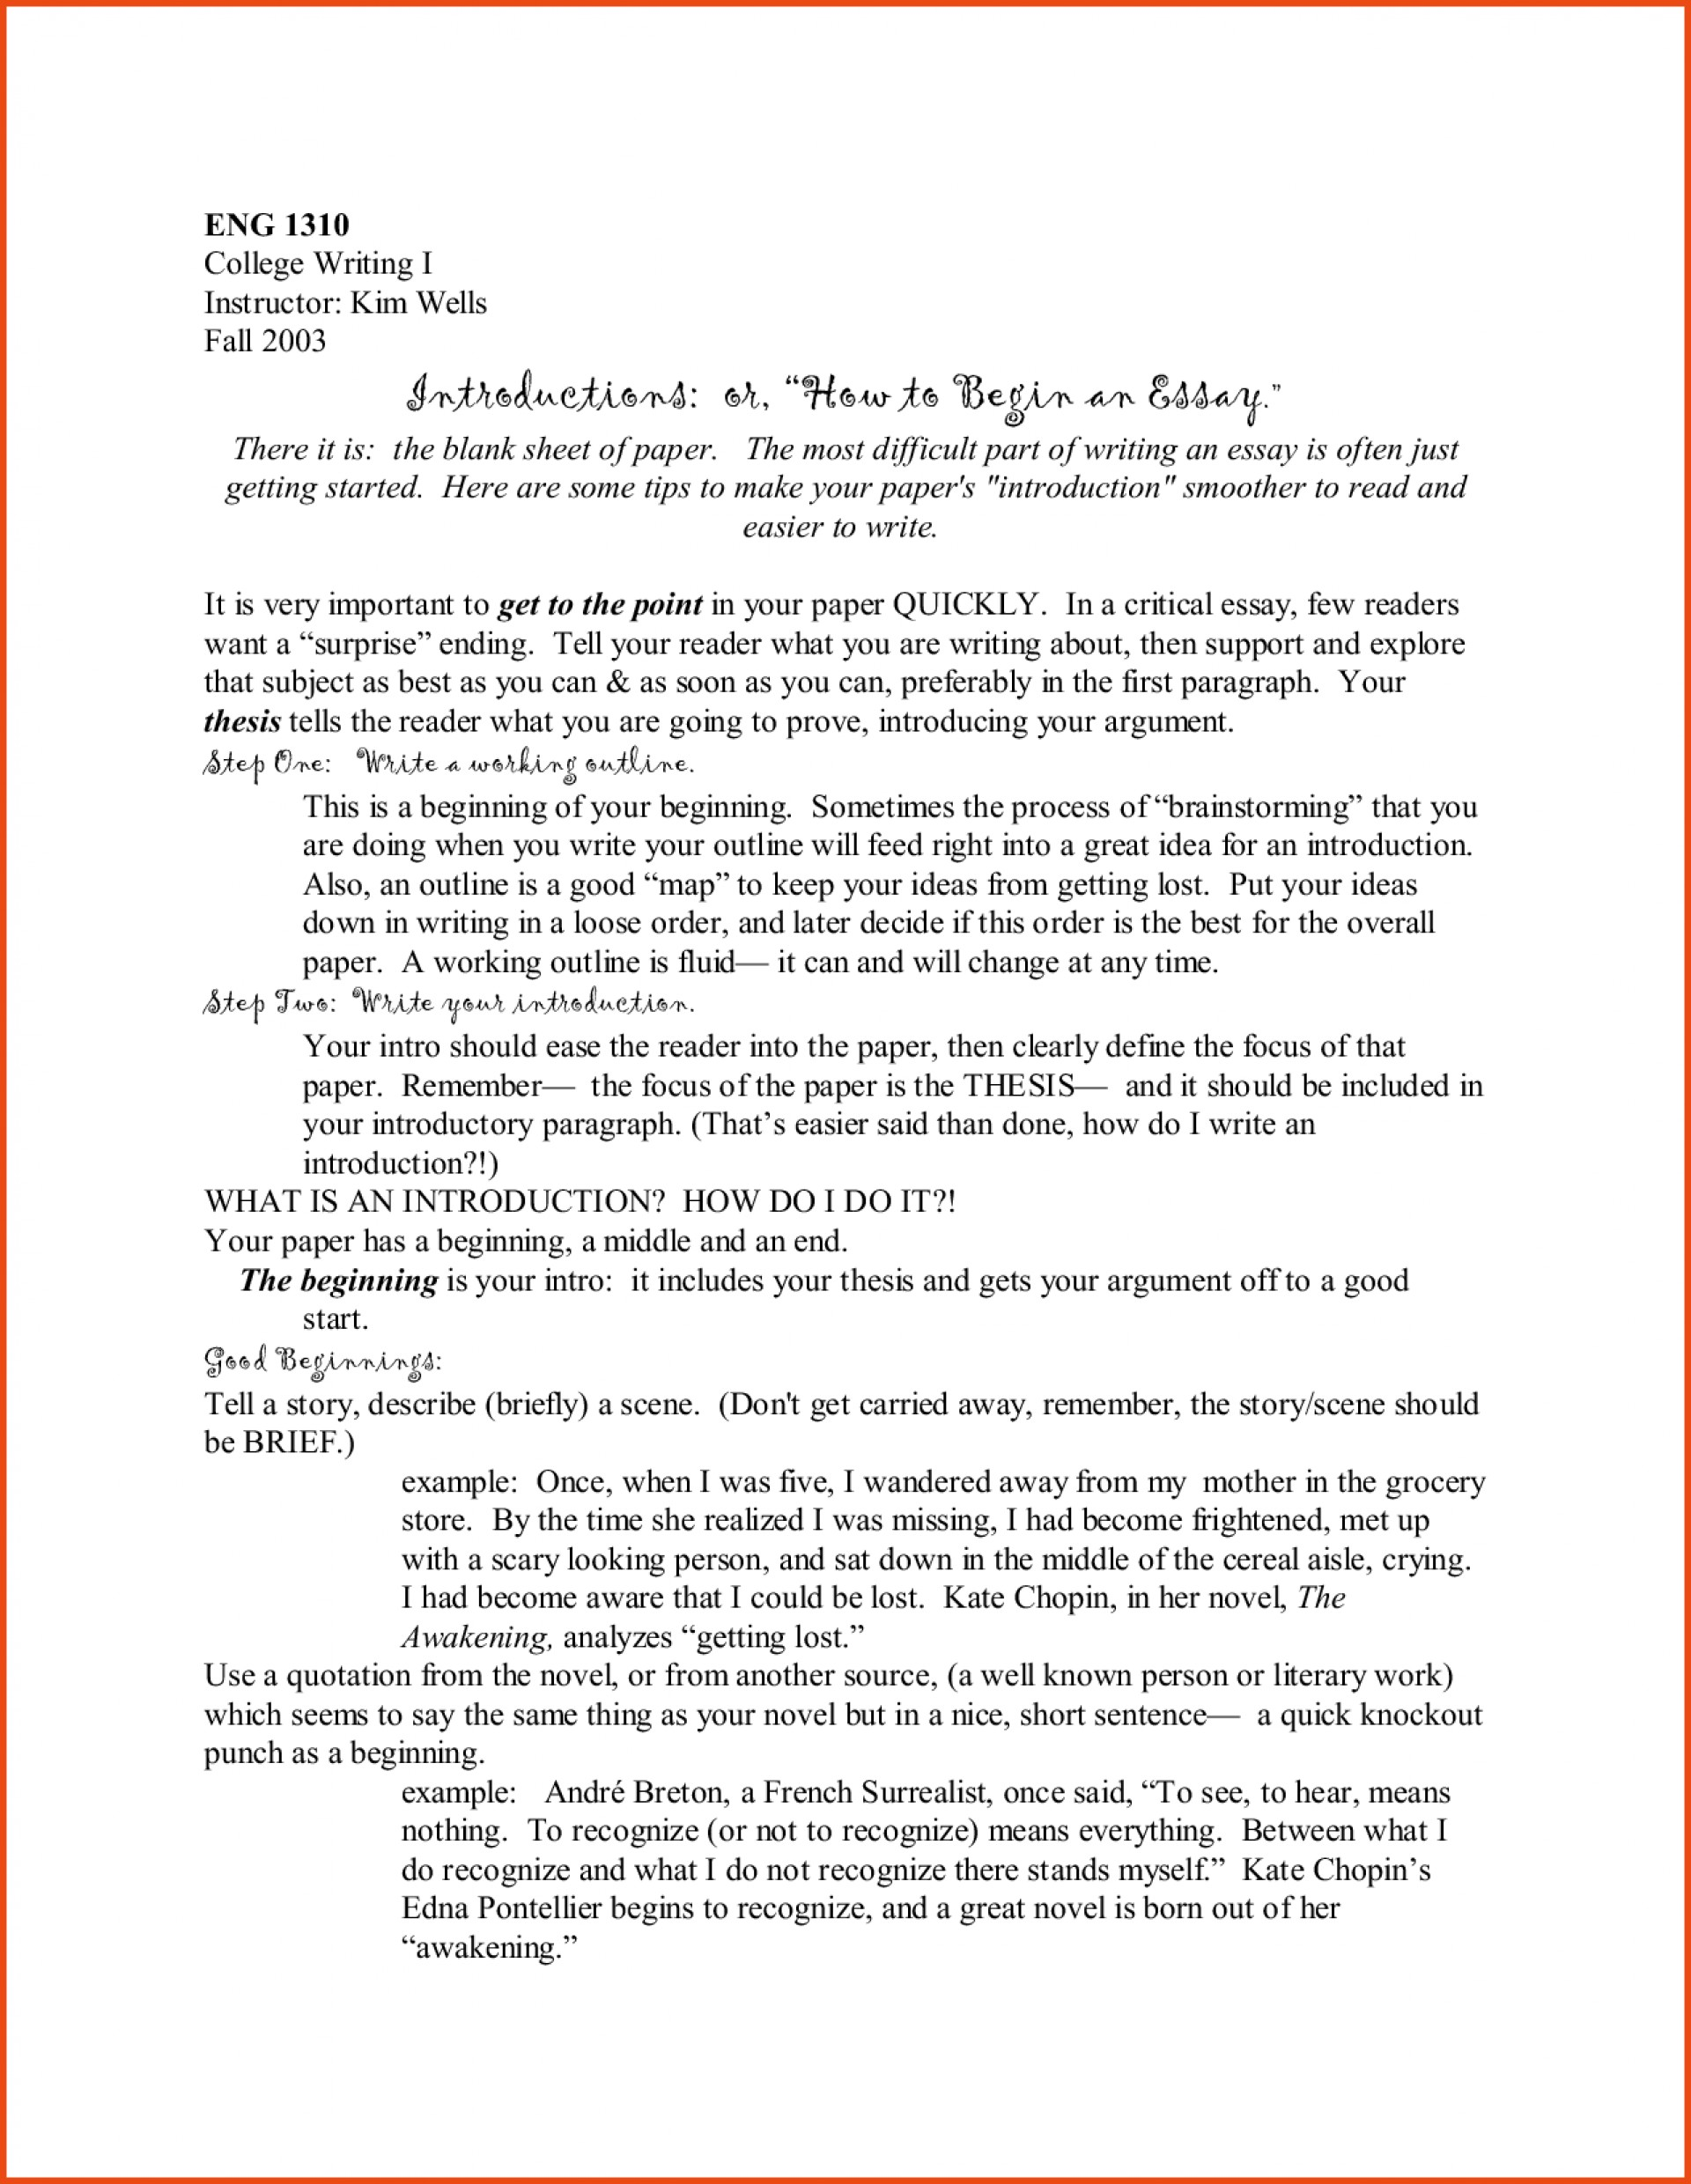 009 College Essays Application Examples Of Essay Consultant L Example How To Start Breathtaking An Argumentative About Yourself For Scholarship Analysis On A Book 1920